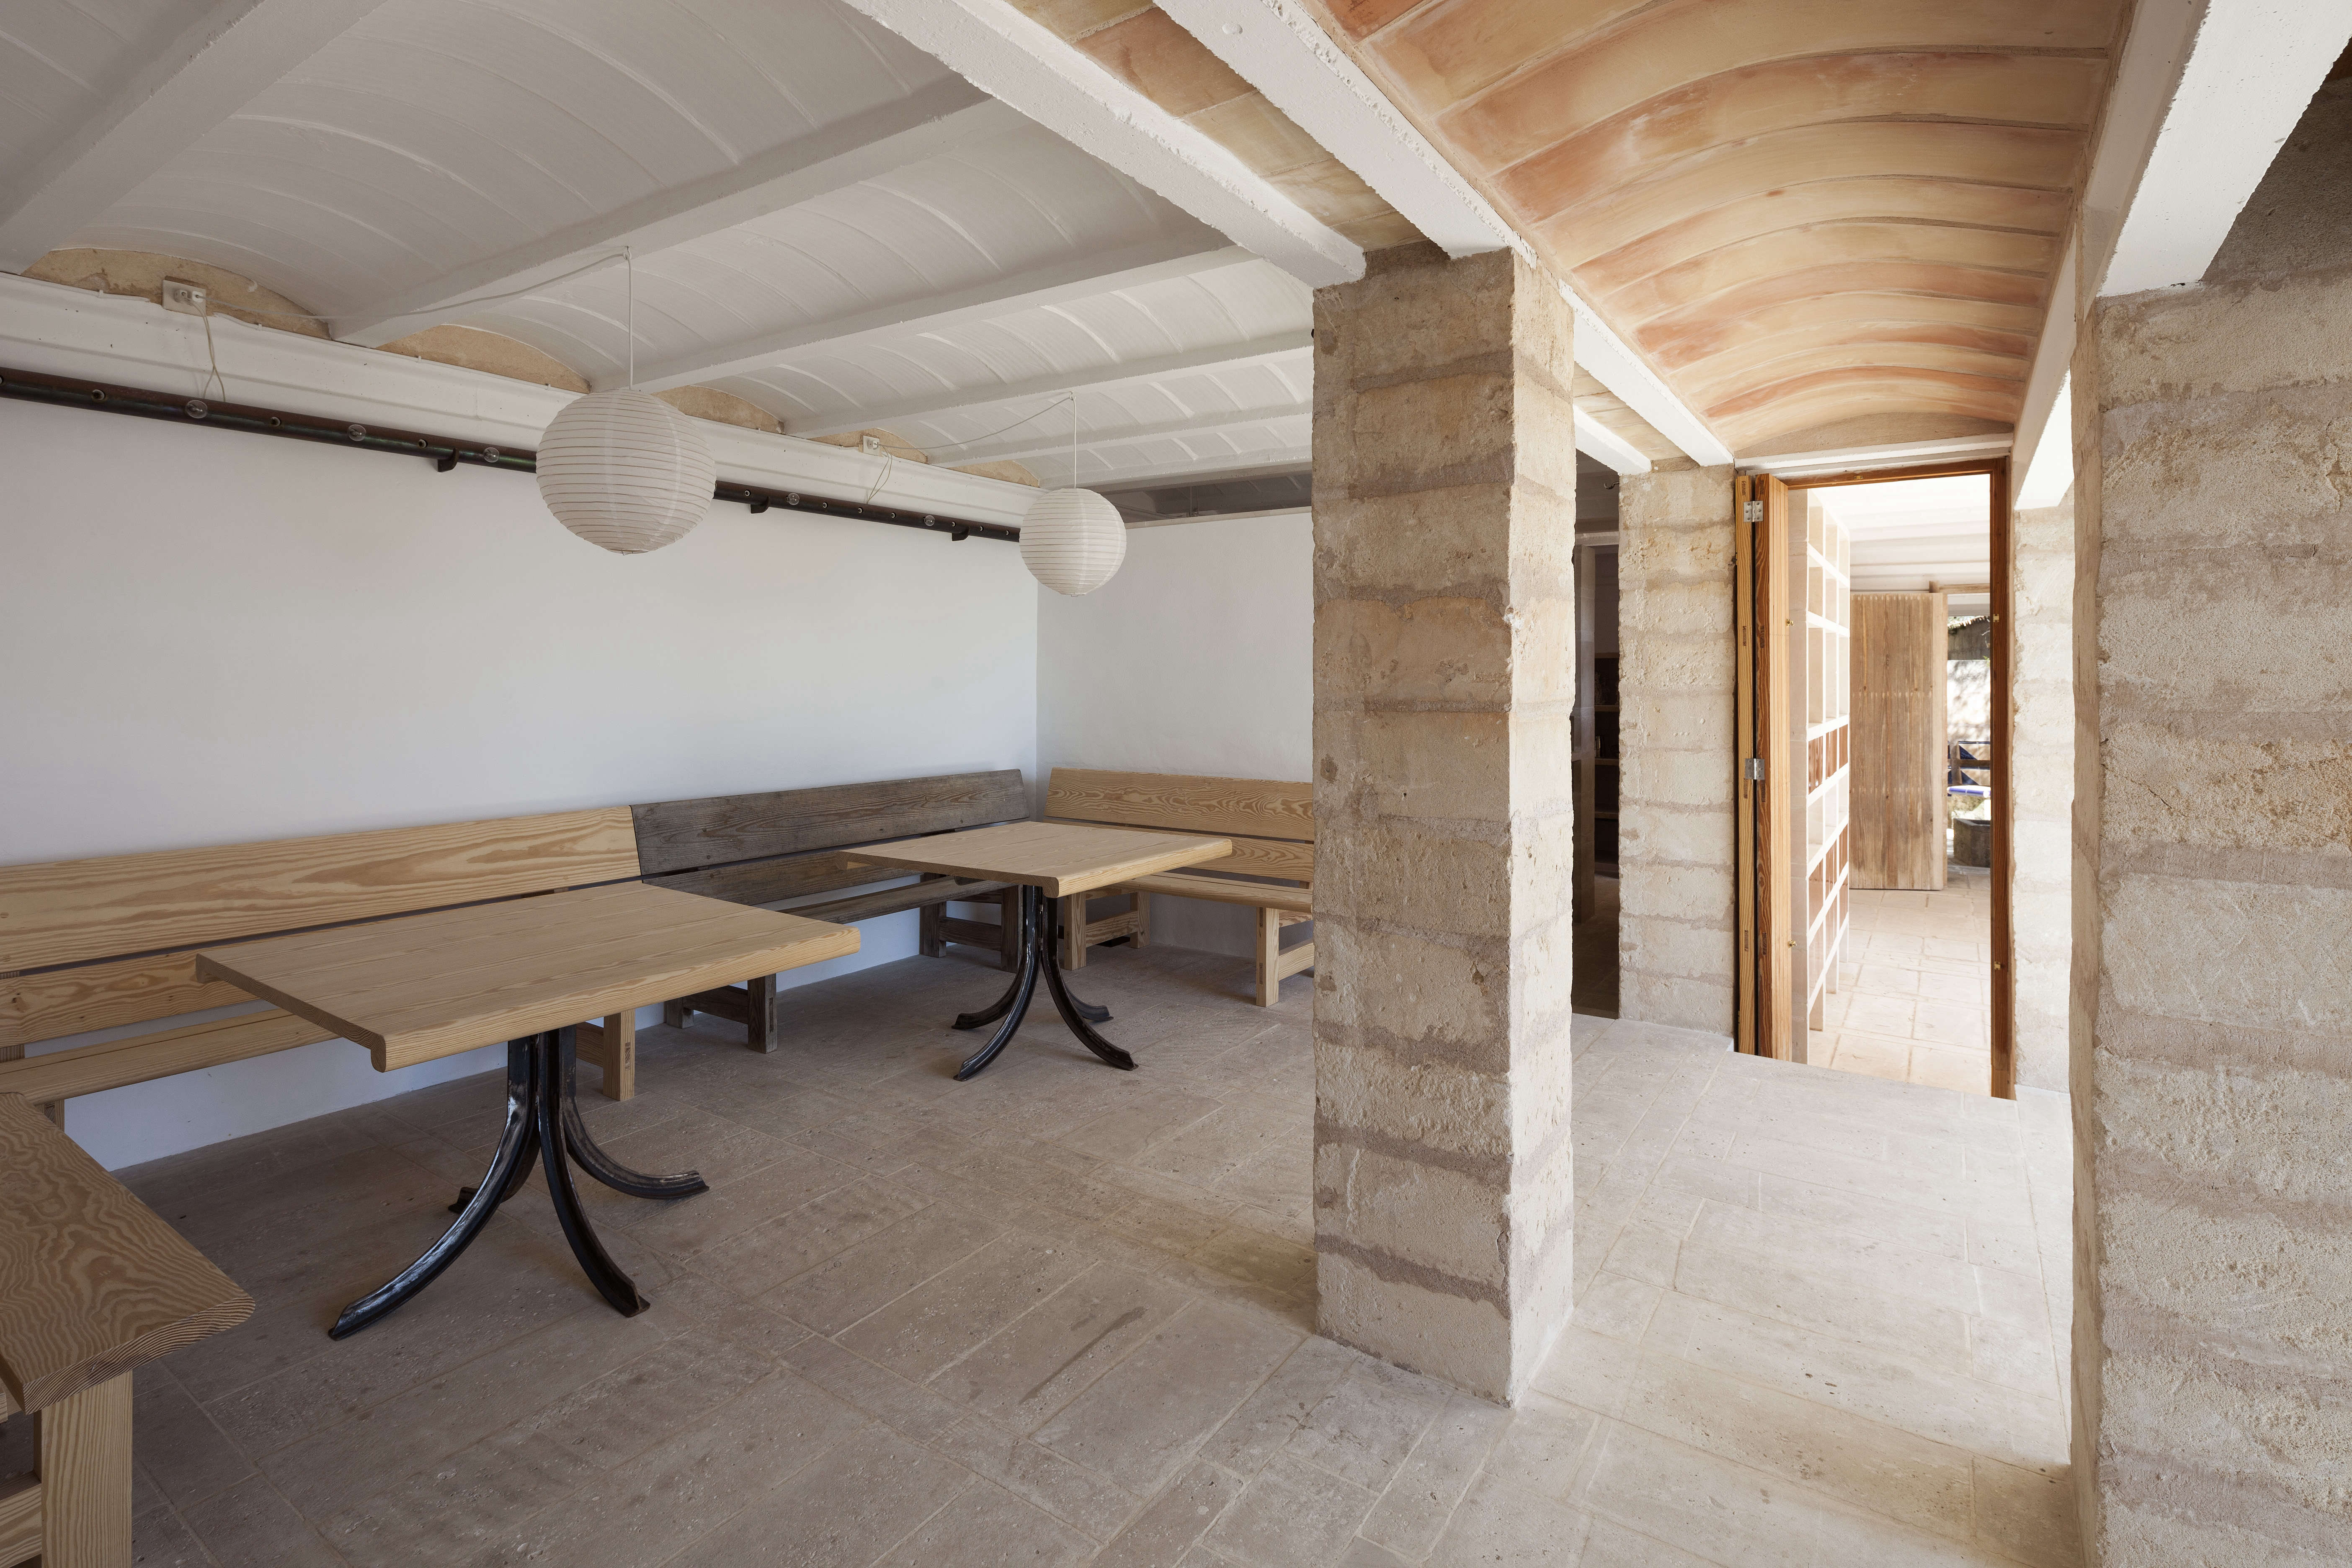 A modernist dining room with built-in wood banquettes.